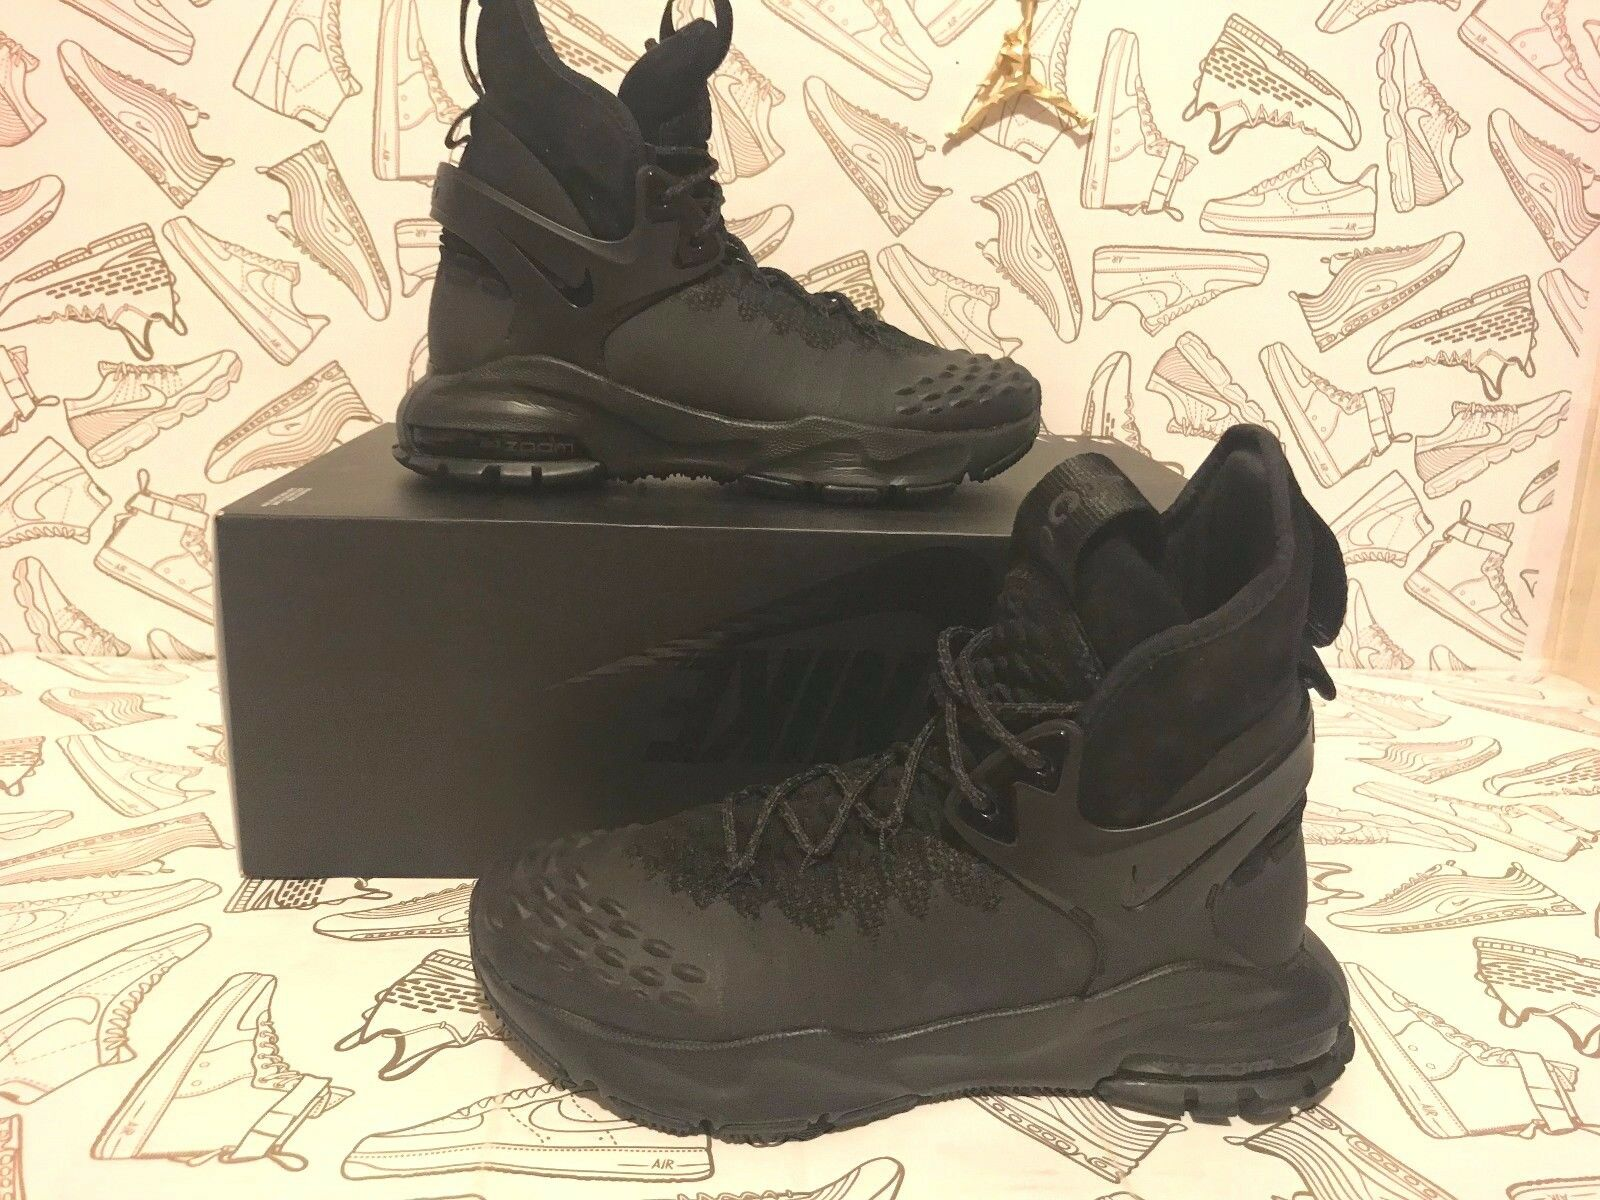 NikeLab Nike Zoom Tallac Flyknit ACG Boots 865947 001 Black Mens Sz  6.5=Wmens 8 1 of 9Only 4 available NikeLab Nike Zoom Tallac Flyknit ACG  Boots ...